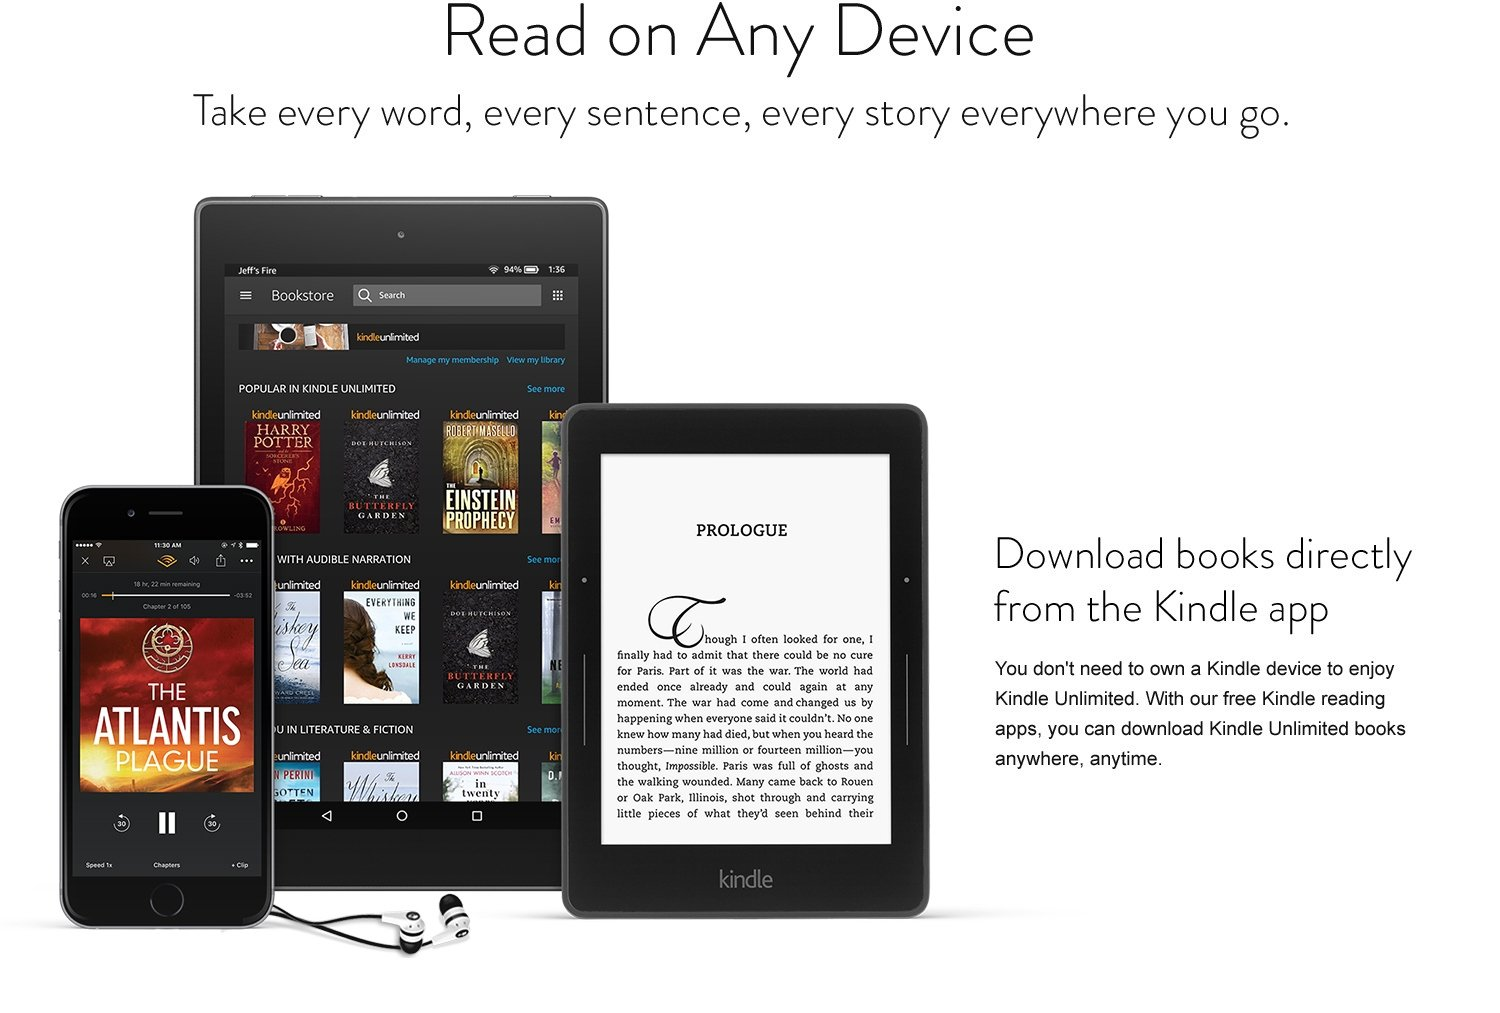 Read on any device: Take every word, every sentence, every story everywhere you go. Download books directly from the Kindle app. You don't need to own a Kindle device to enjoy Kindle Unlimited. With our free Kindle reading apps, you can download Kindle Unlimited books anywhere, anytime.